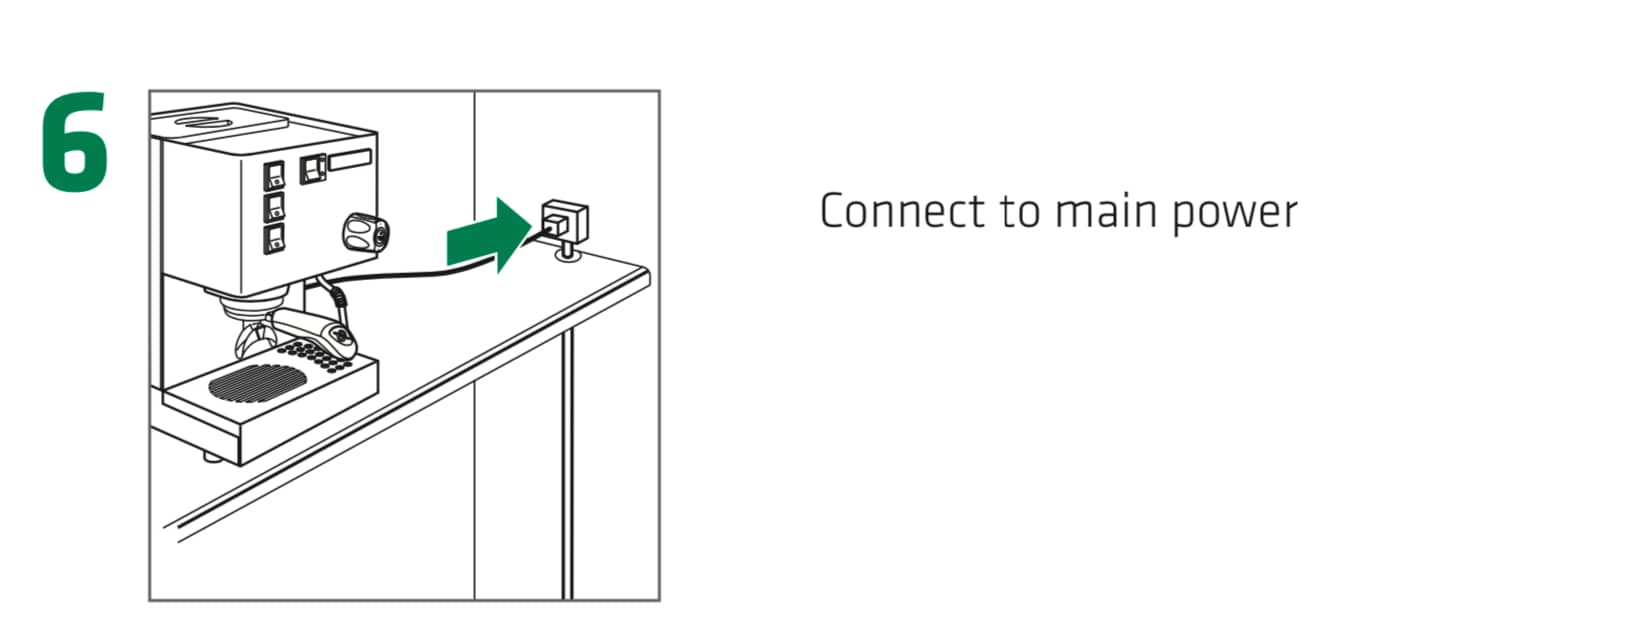 How to set up the Rancilio Silvia Espresso Machine, Step6 : Connect the Rancilio Silvia Espresso Machine to the main power. Make sure area is dry and neatly free of obstacles.